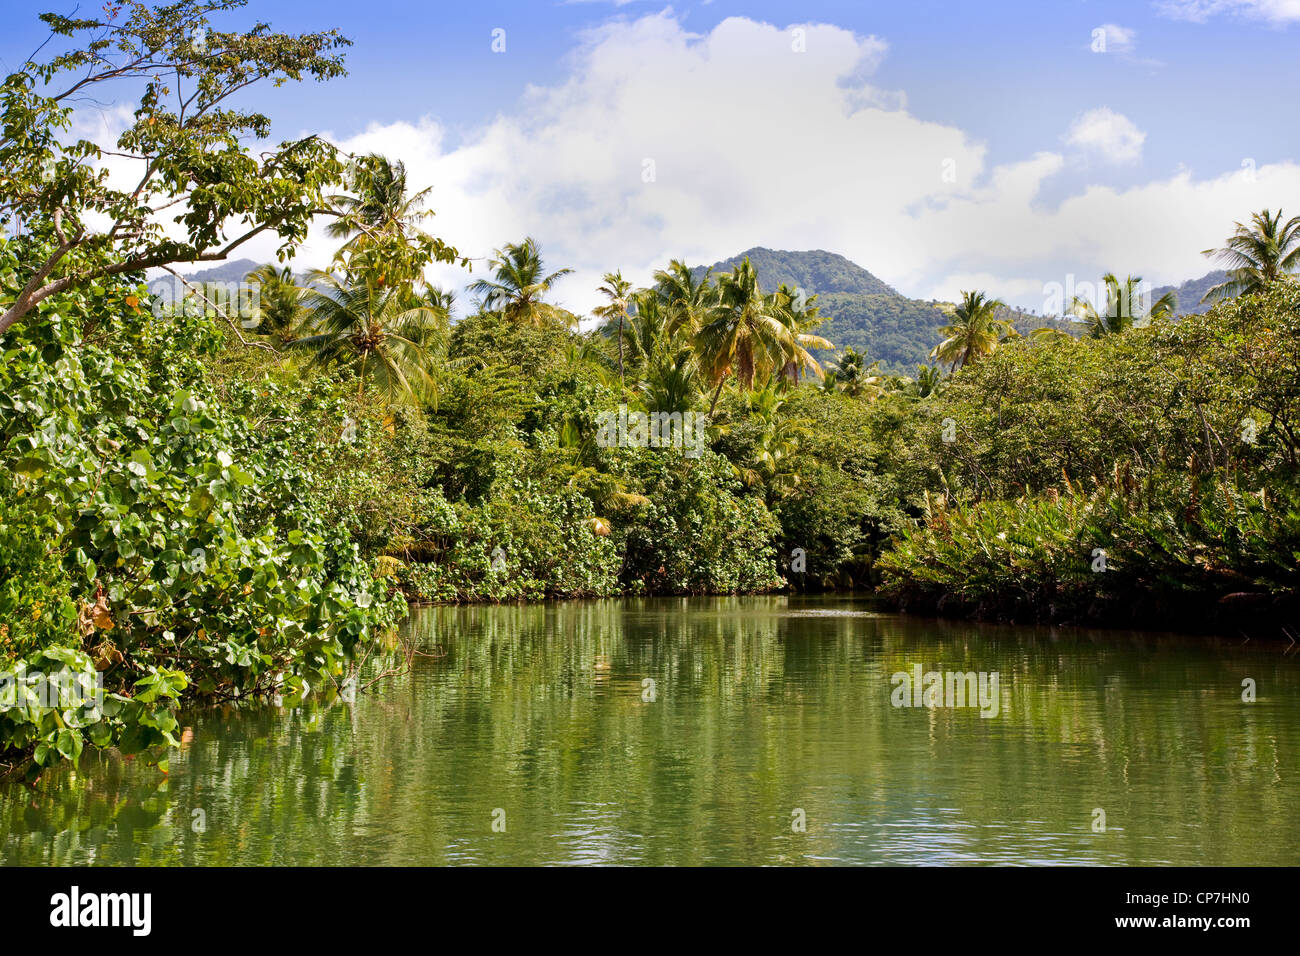 Tree lined estuary of Indian River near Portsmouth in Dominica West Indies - Stock Image